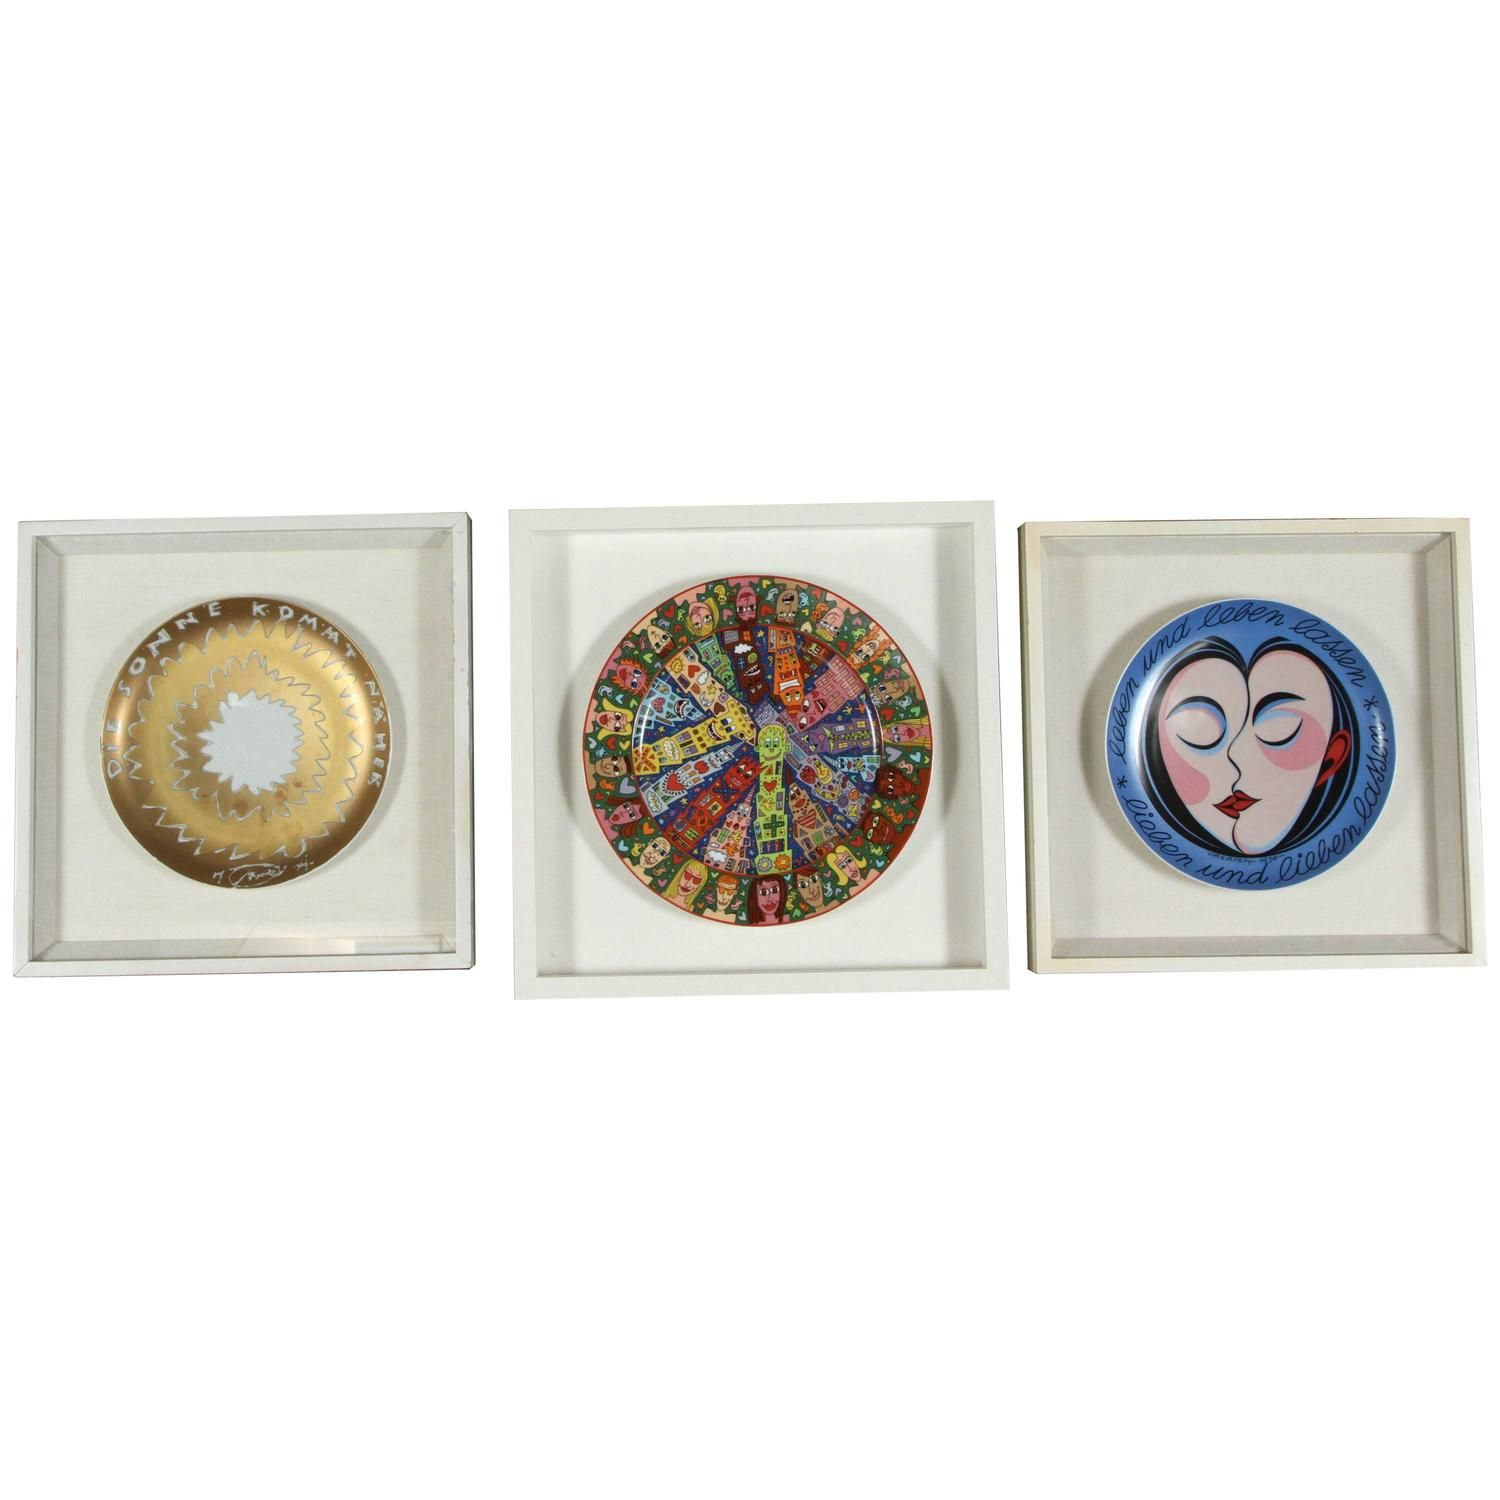 Rosenthal Collectible Set of Three Framed Plates 1  sc 1 st  Pinterest & Rosenthal Collectible Set of Three Framed Plates | Modern decorative ...